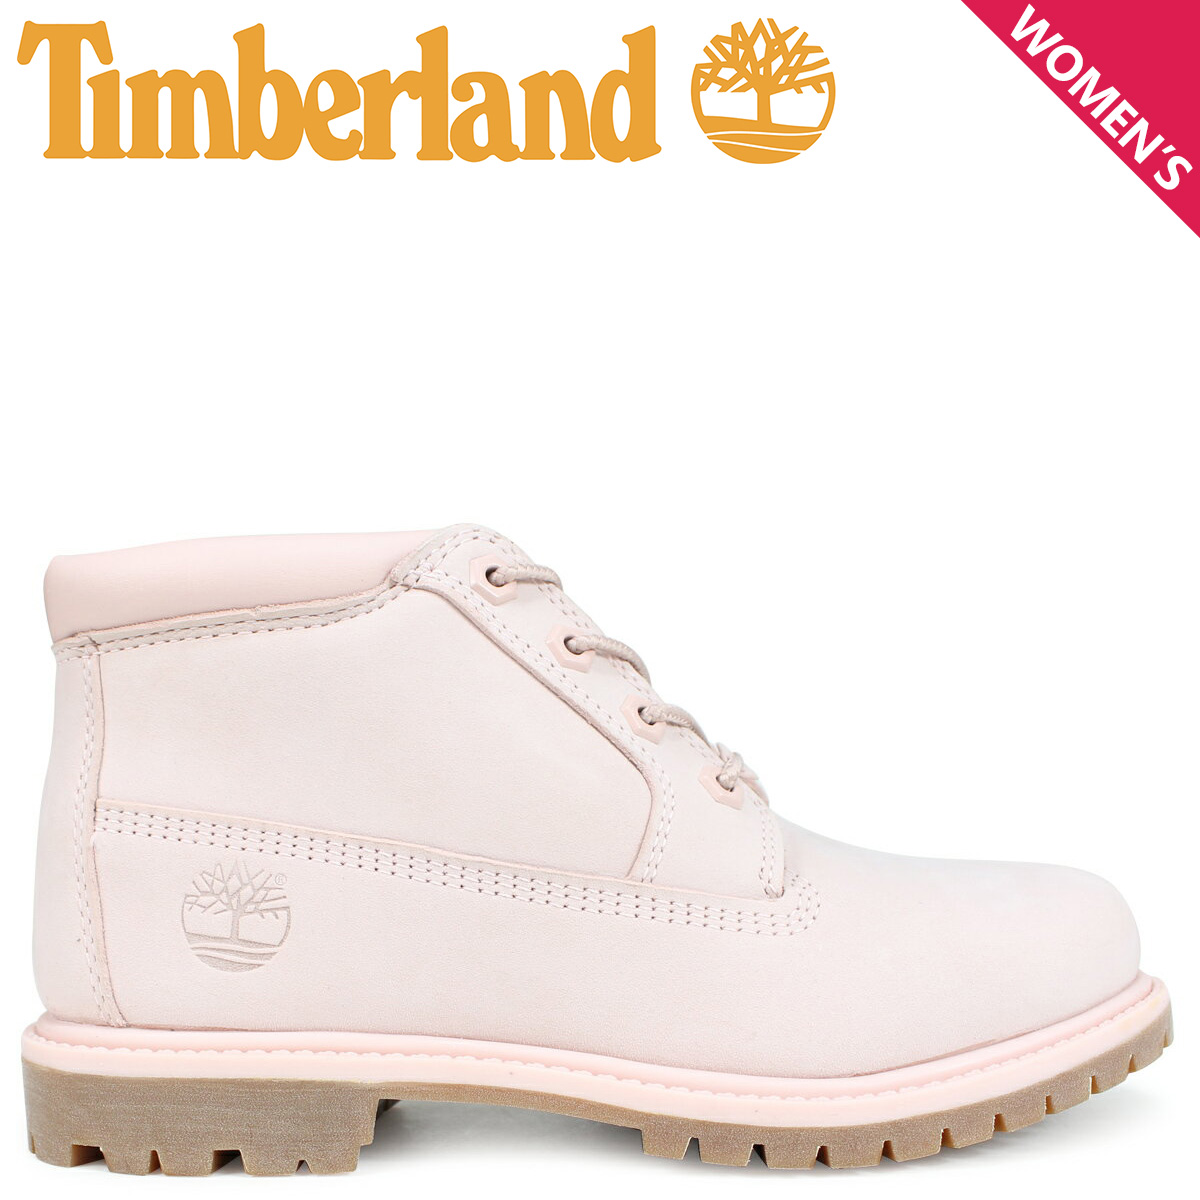 Timberland チャッカ レディース ティンバーランド ブーツ NELLIE CHUKKA DOUBLE A1S7S Wワイズ ライトピンク